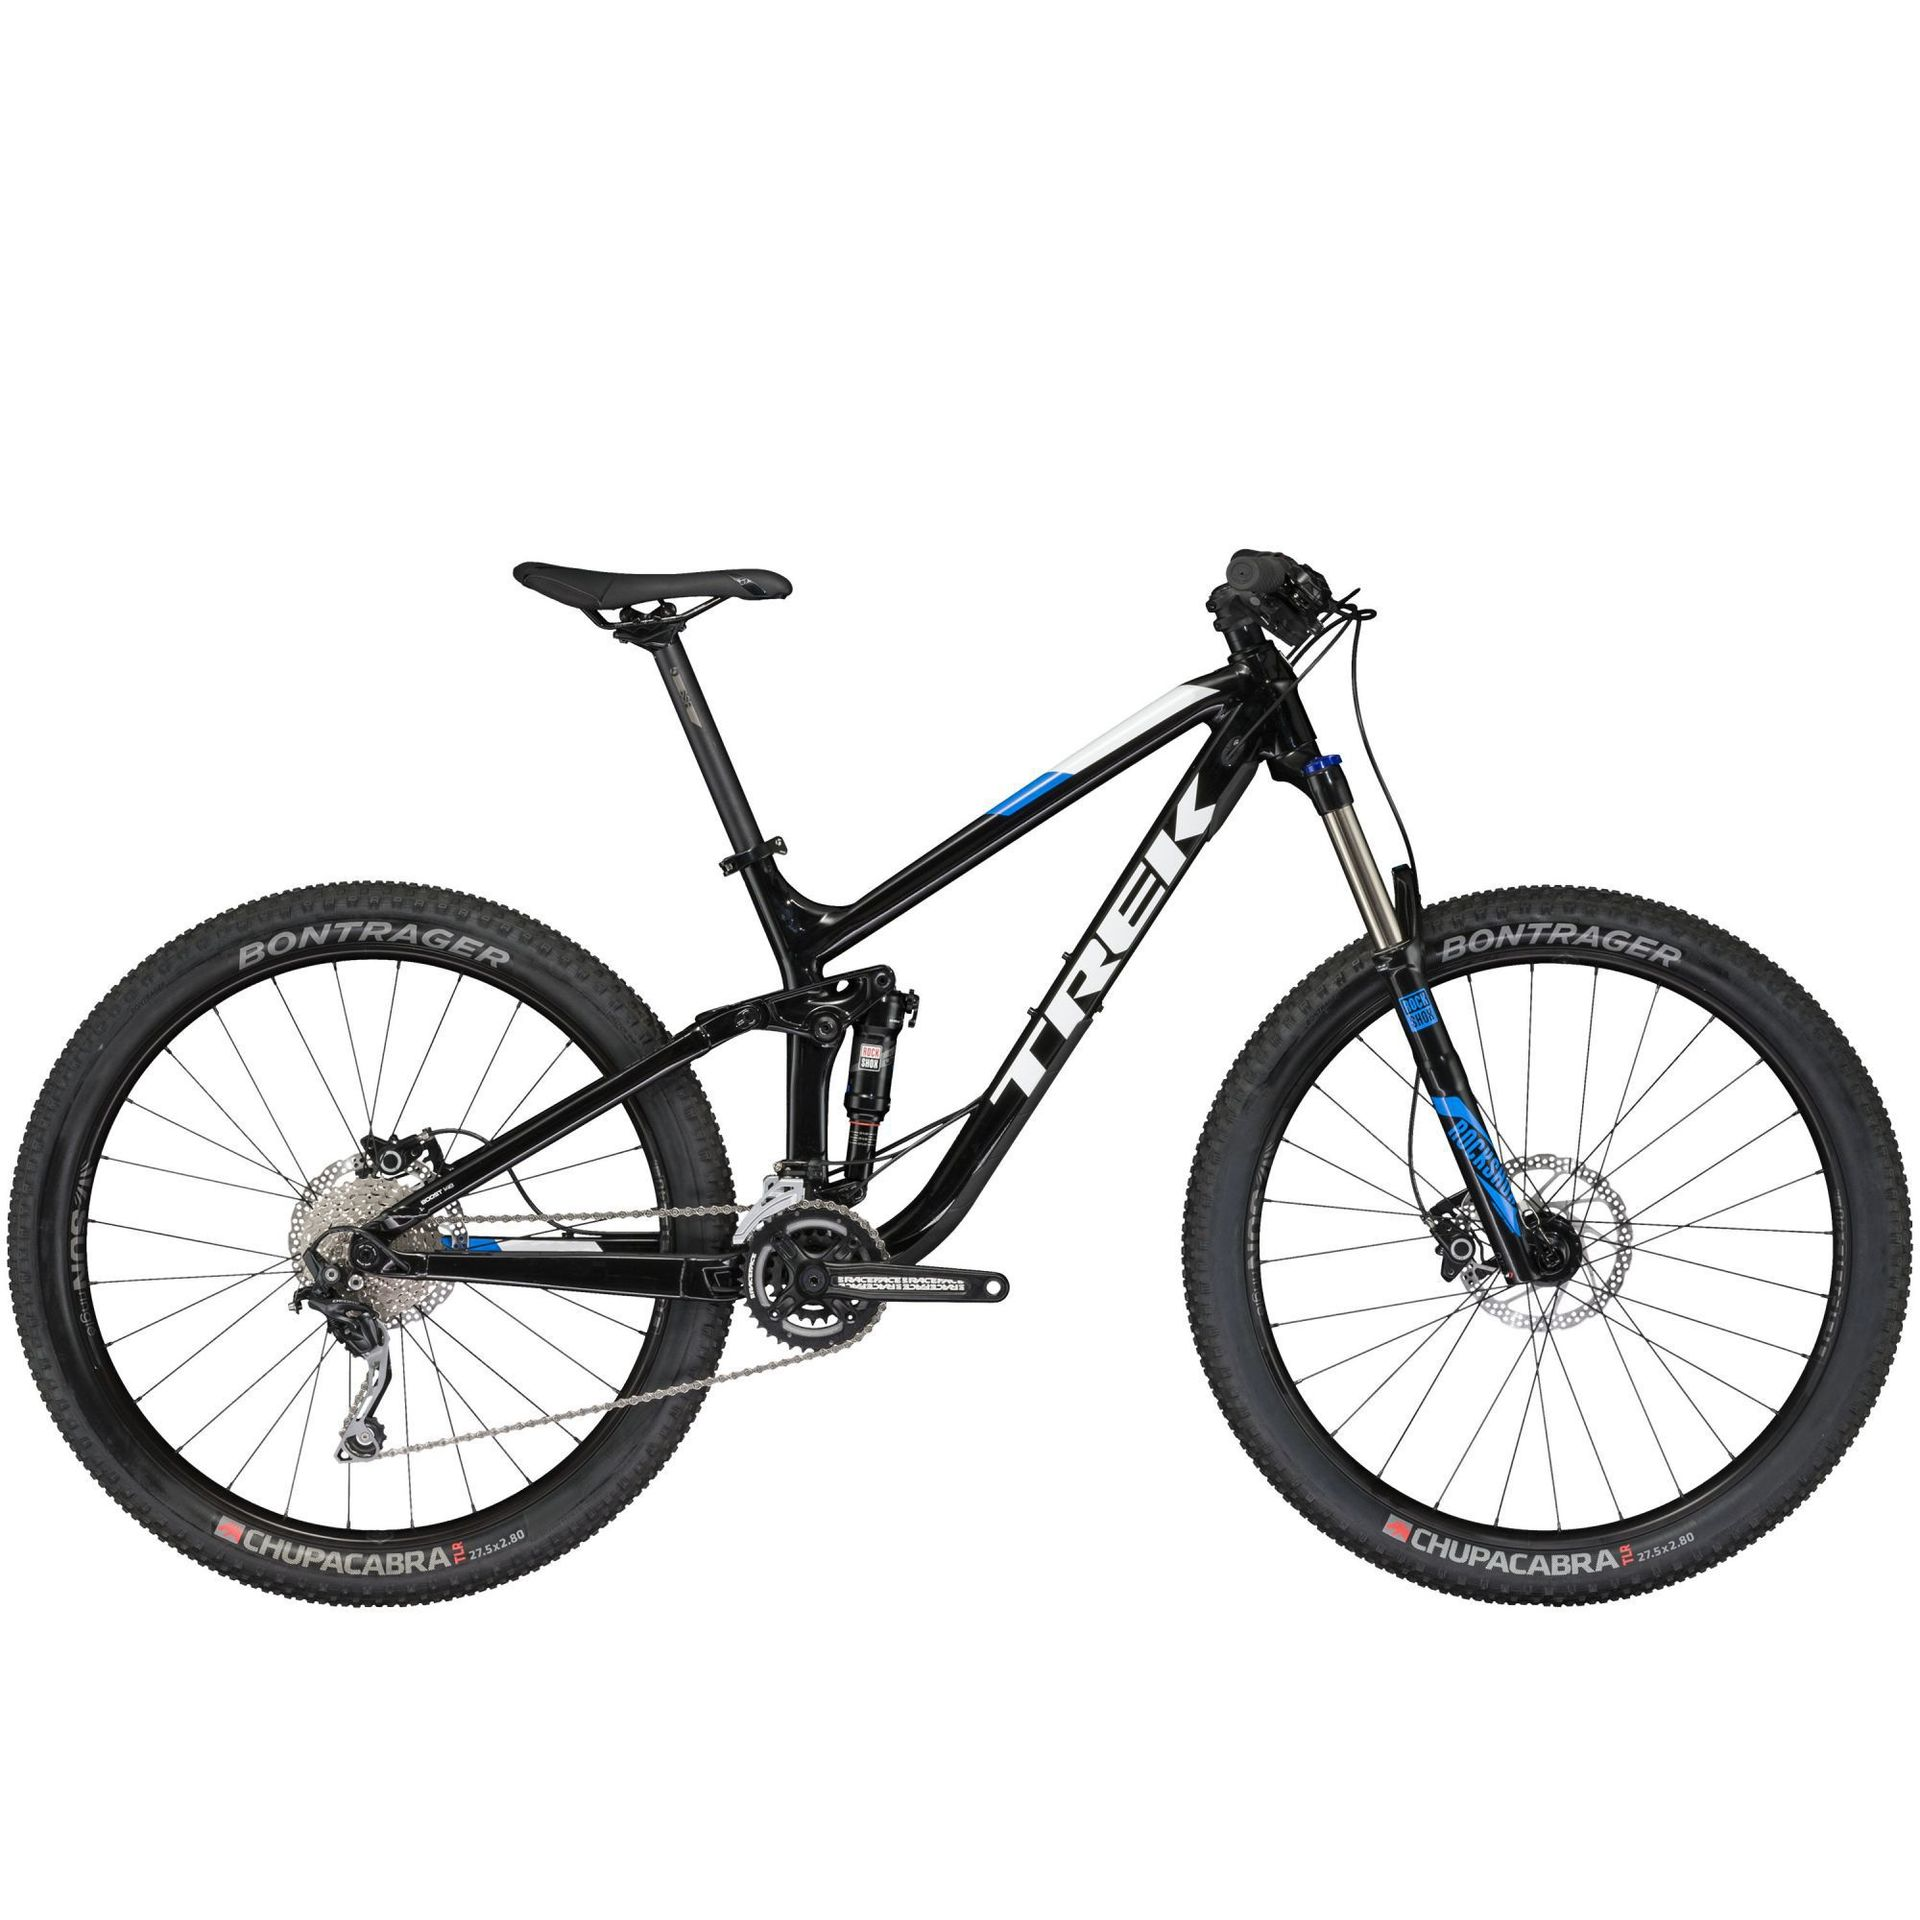 ROWER TREK FUEL EX 9 2017 27.5 TREK BLACK 1